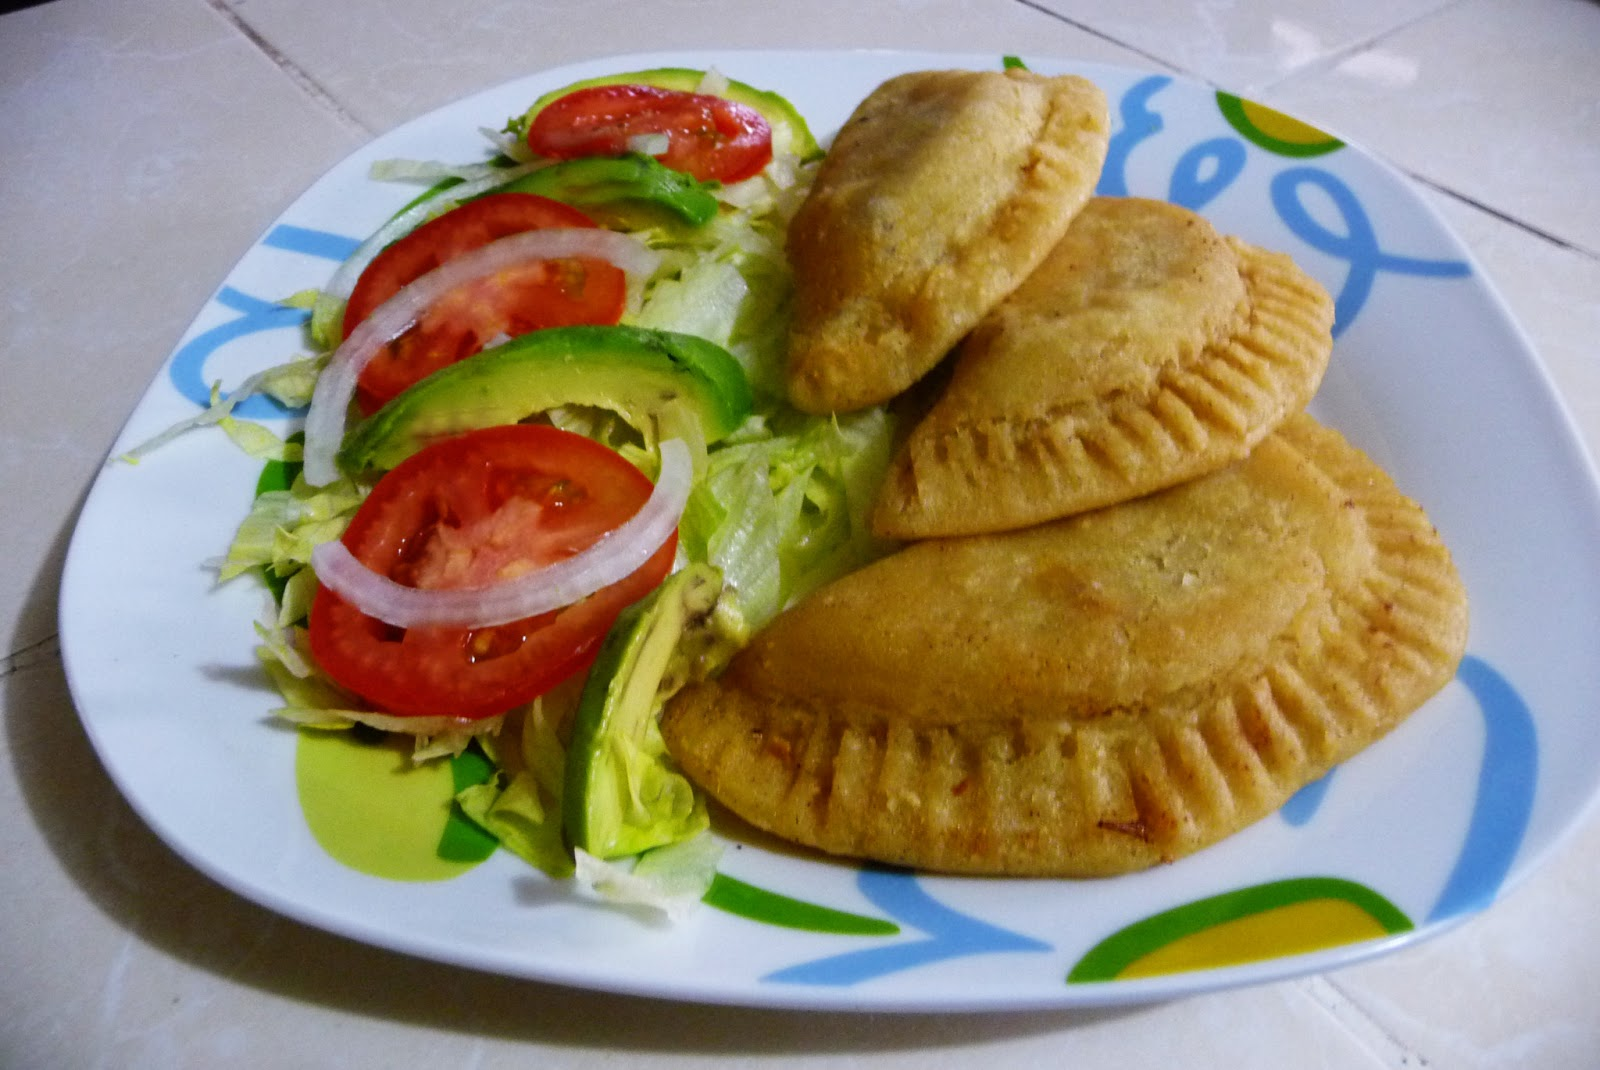 ... empanadas fried empanadas recipes dishmaps fried empanadas recipes